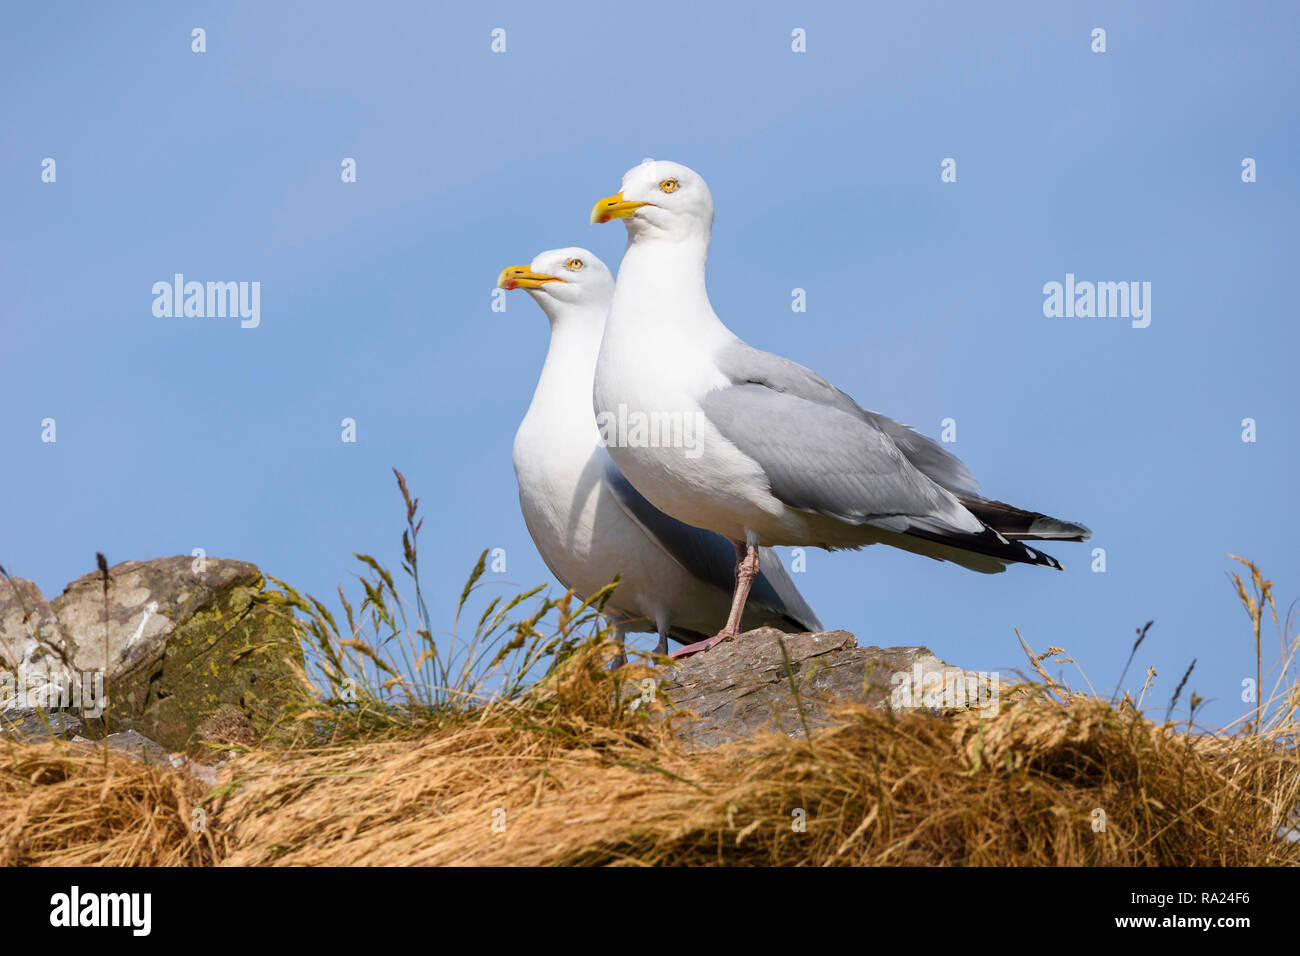 Herring Gull, Larus argentatus, Murray Isles, Solway Firth, Dumfries & Galloway, Scotland - Stock Image